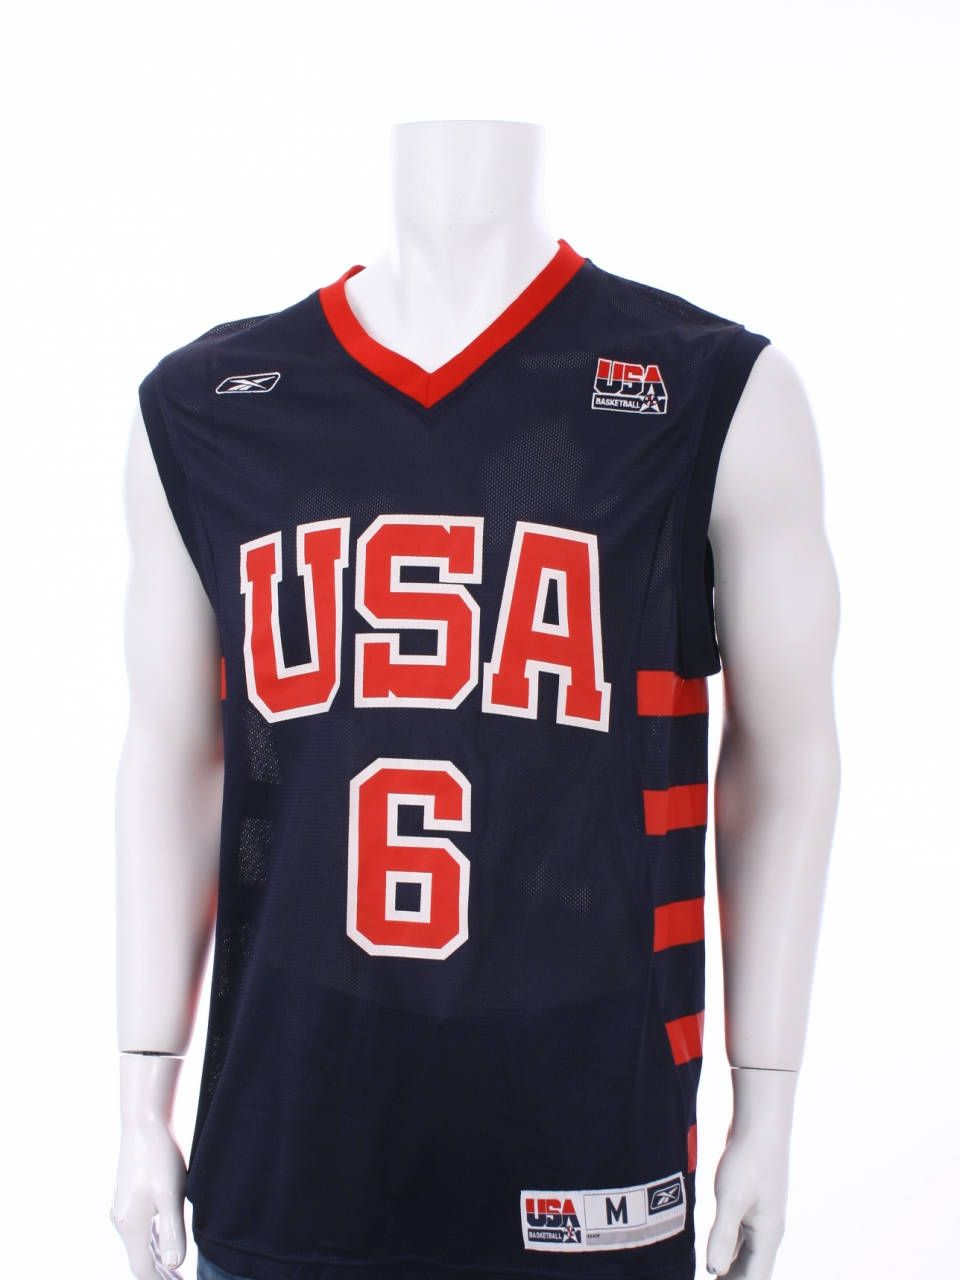 95bd5417a10 Vintage Tracy McGrady #6 USA Olympic Dream Team Basketball Reebok Jersey  Size M by VapeoVintage on Etsy